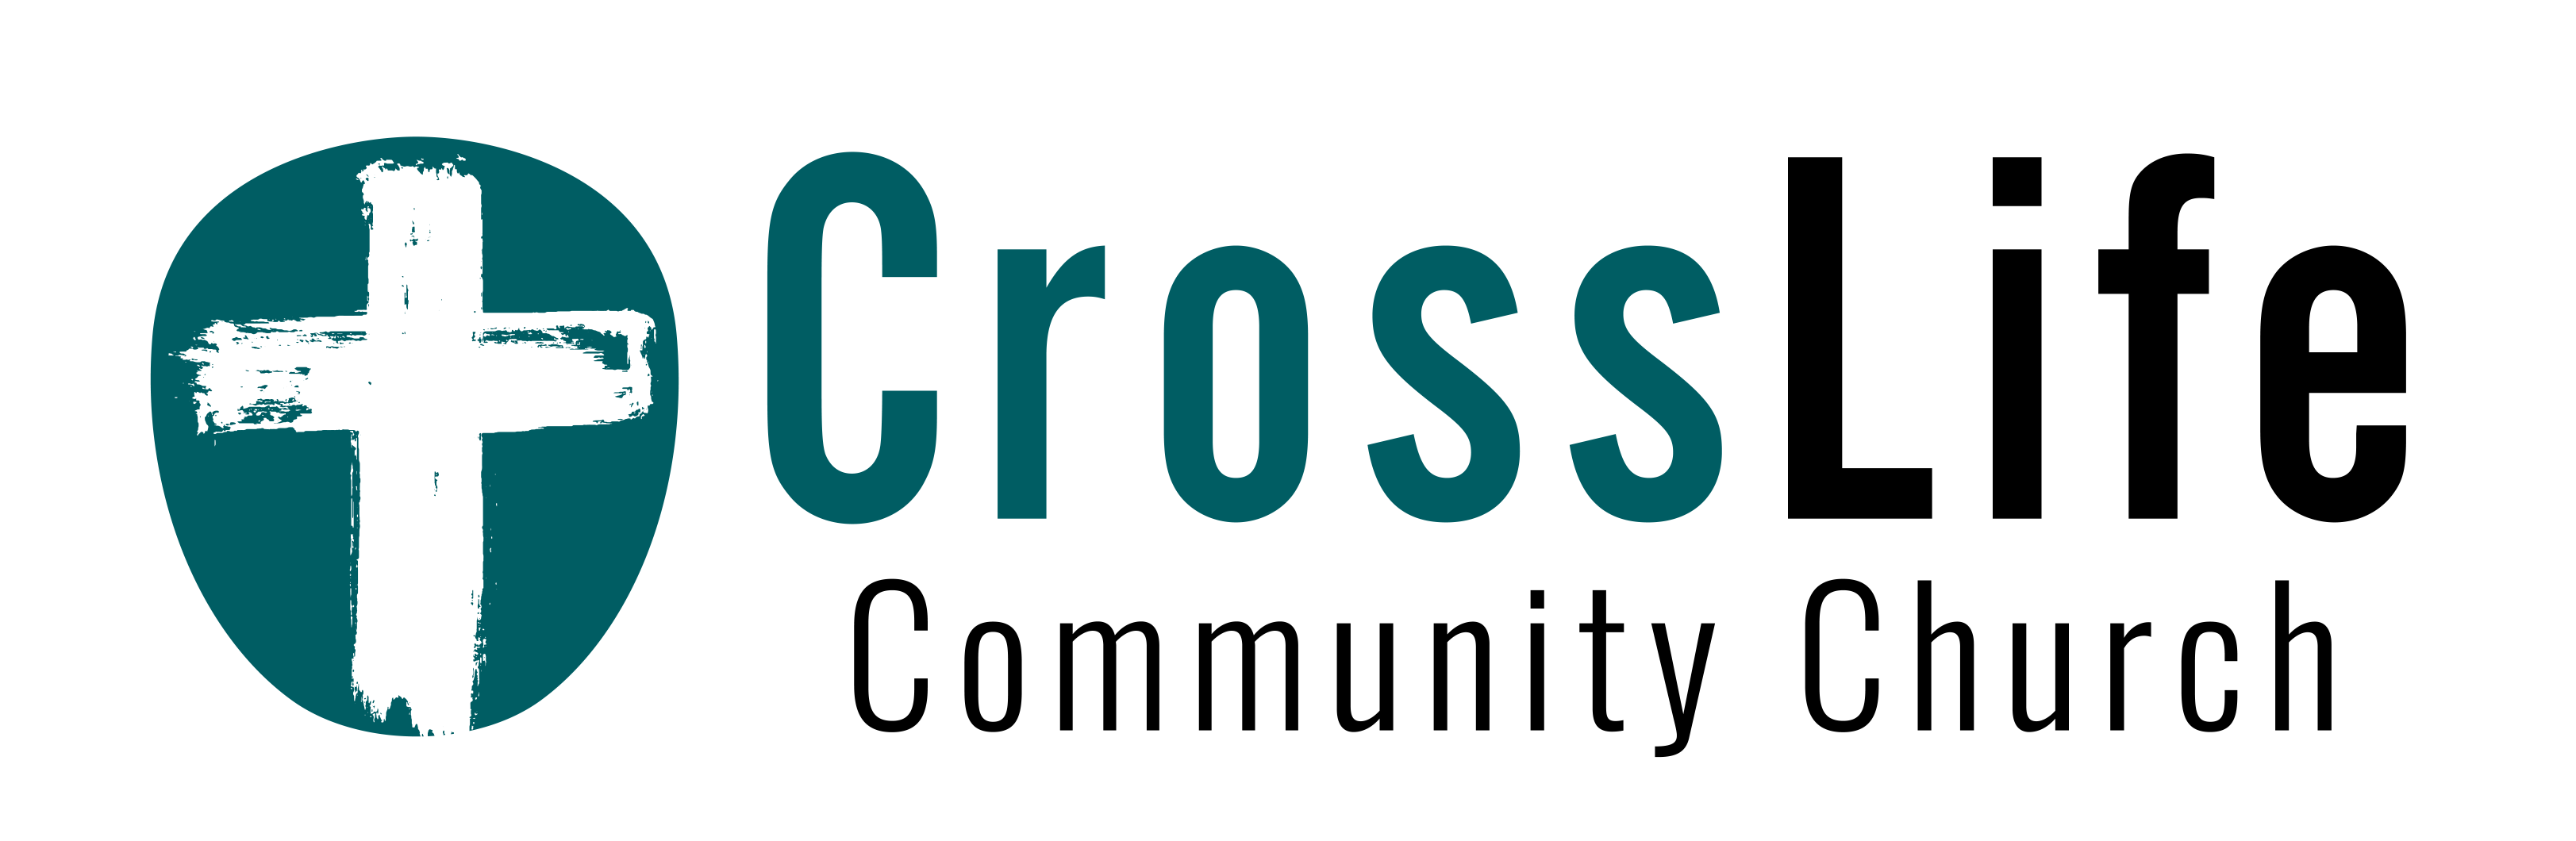 CrossLife Community Church